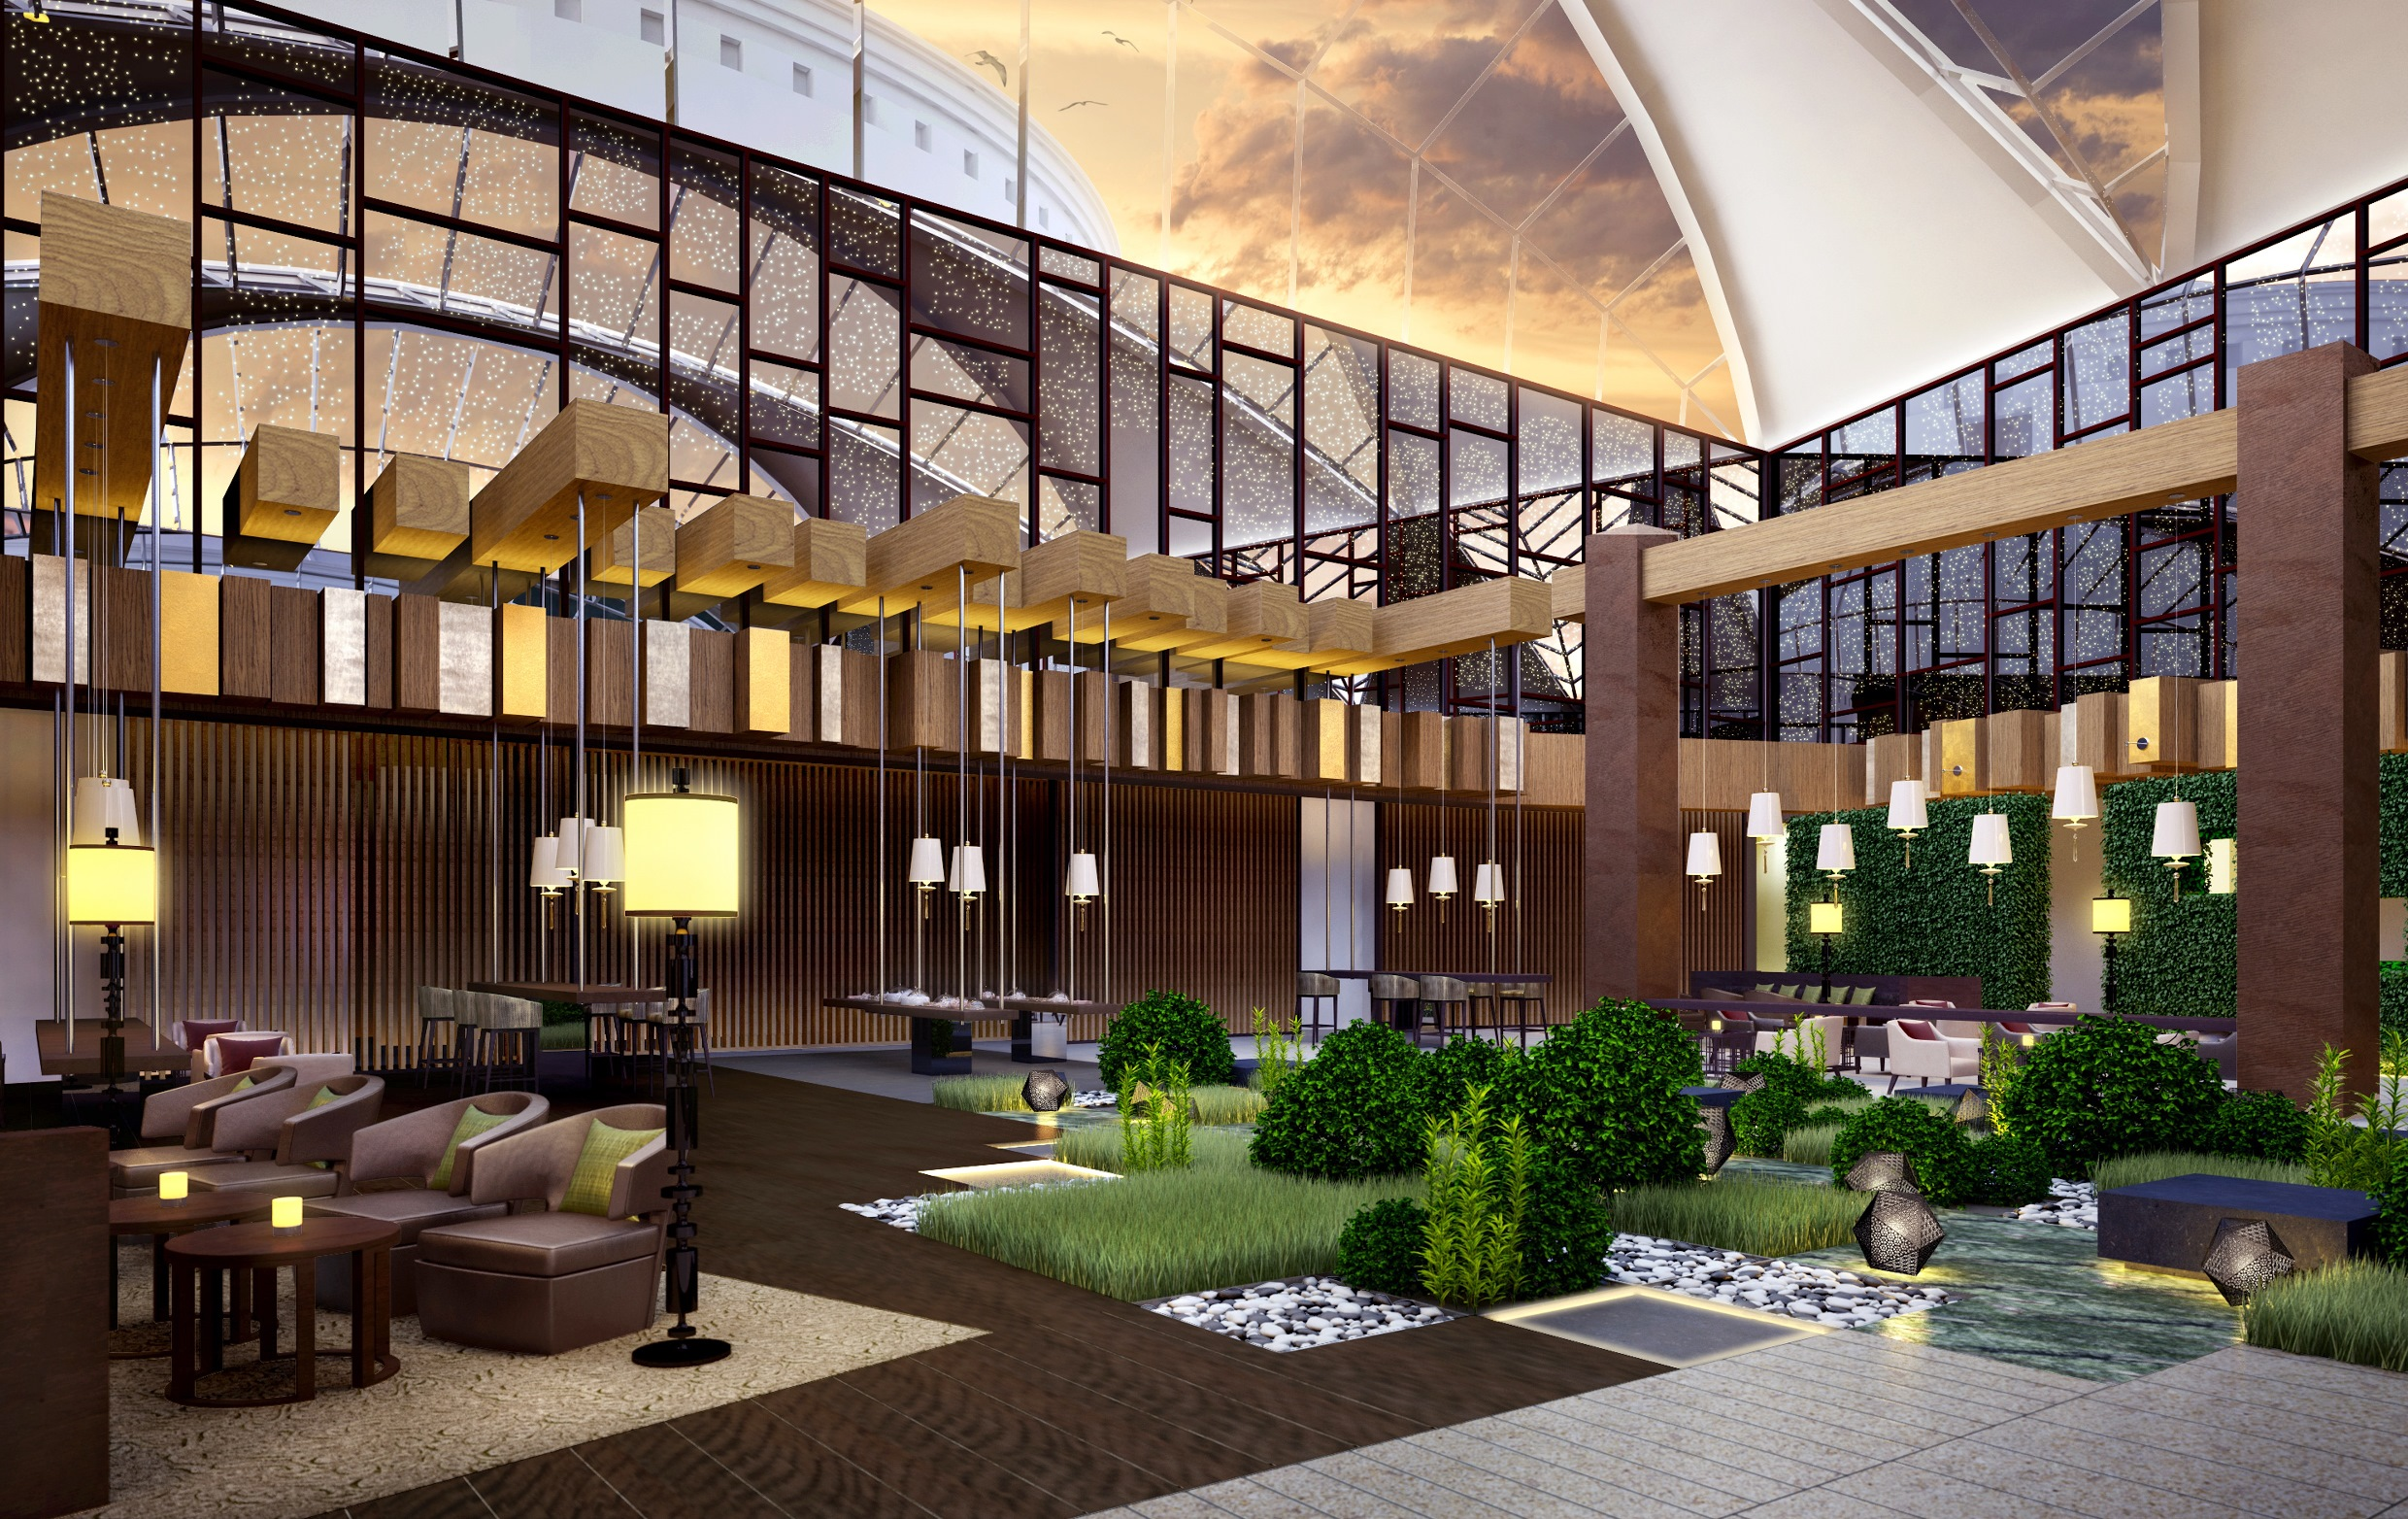 Hyatt to launch new hotel in dubai healthcare city in 2015 for The newest hotel in dubai